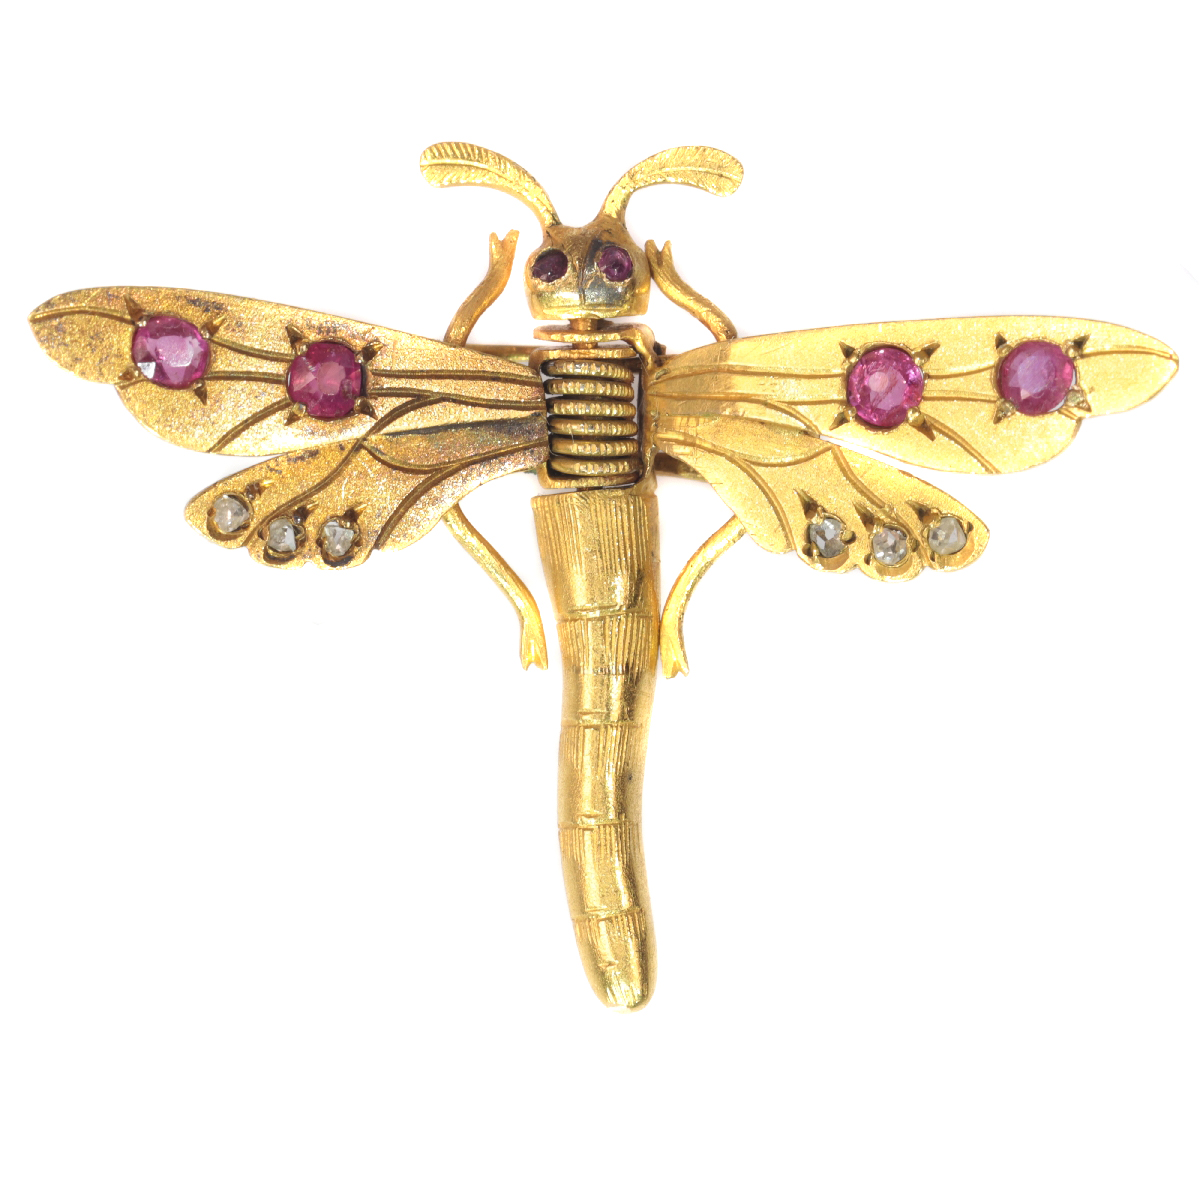 Antique Victorian hair clip brooch 18K gold dragonfly rose cut diamonds rubies